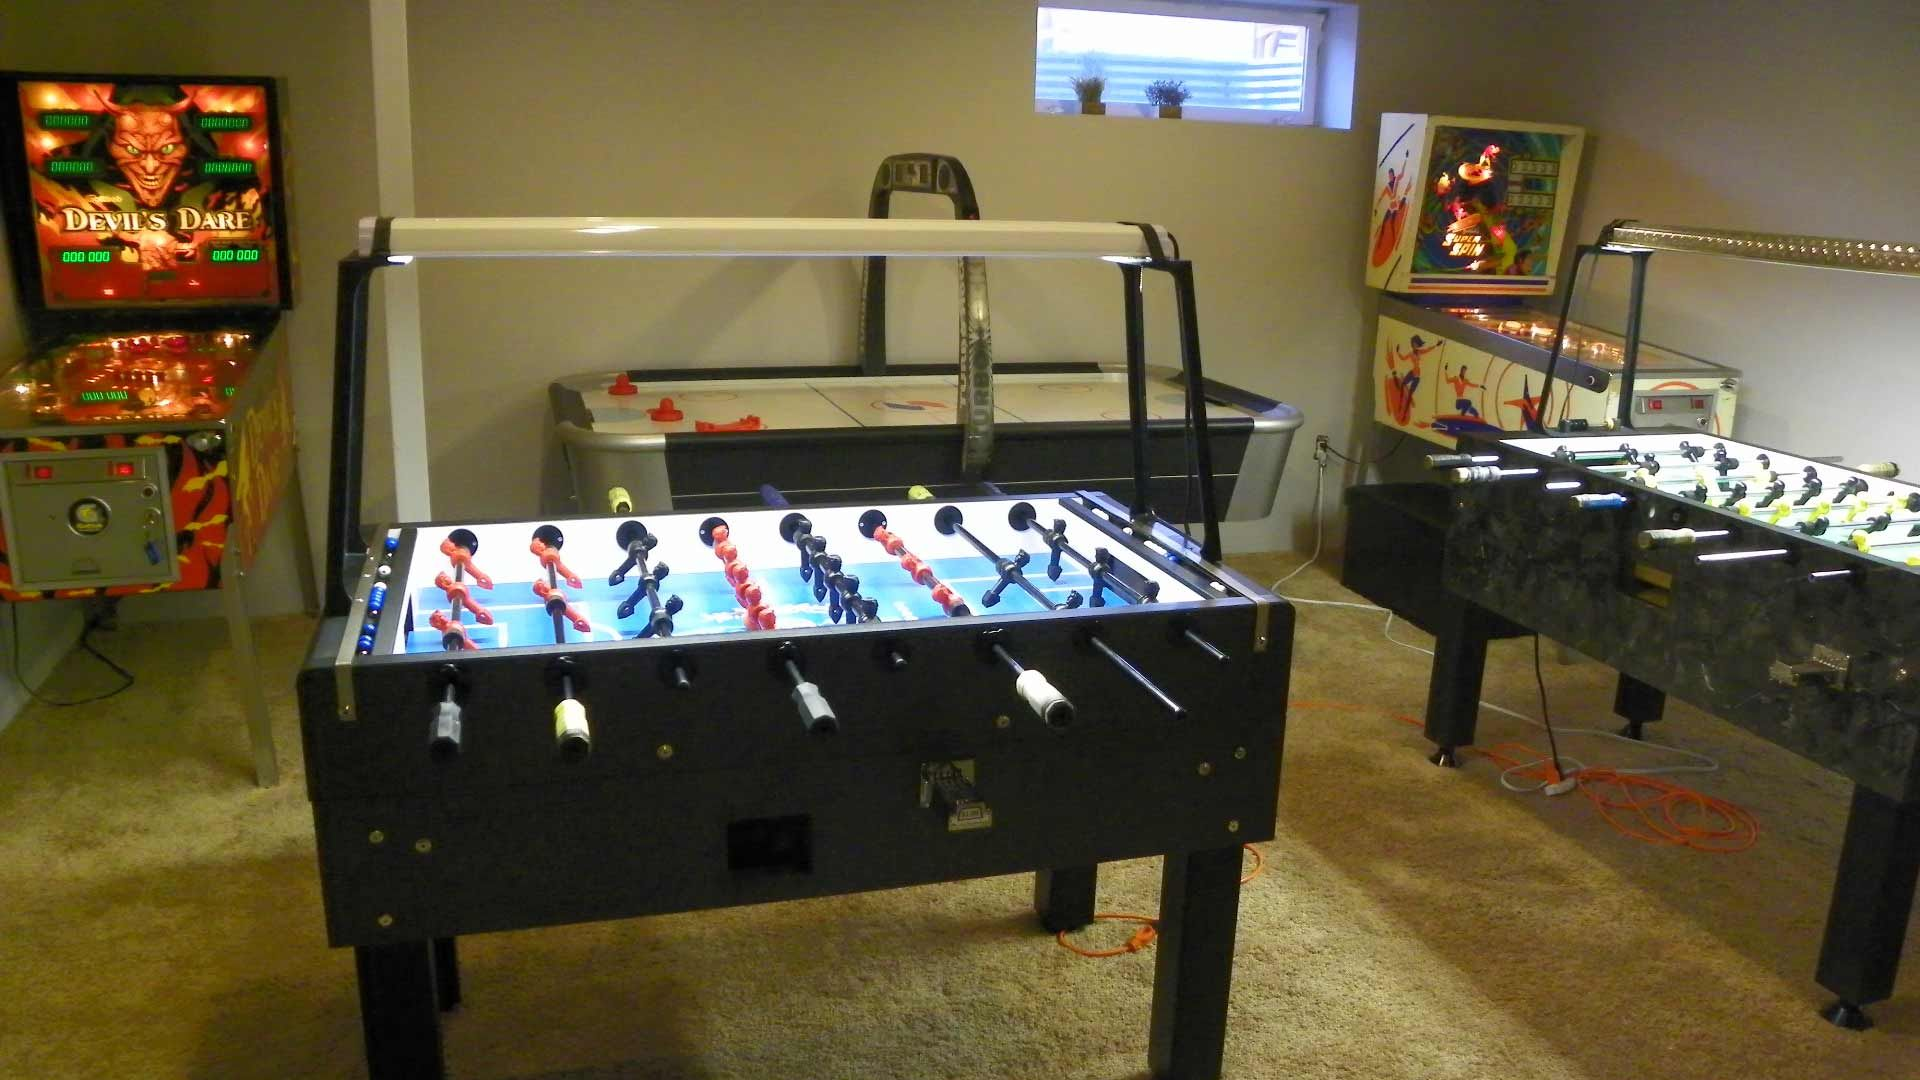 17 Best images about Game Room on Pinterest   Boys game room  Vacation  rentals and The games. 17 Best images about Game Room on Pinterest   Boys game room